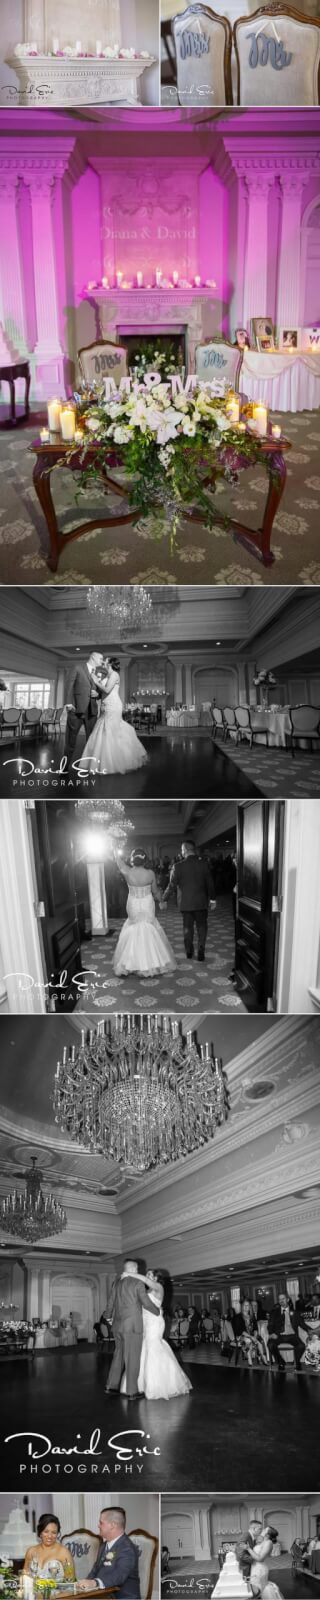 Park Savoy Wedding the reception details and first dance